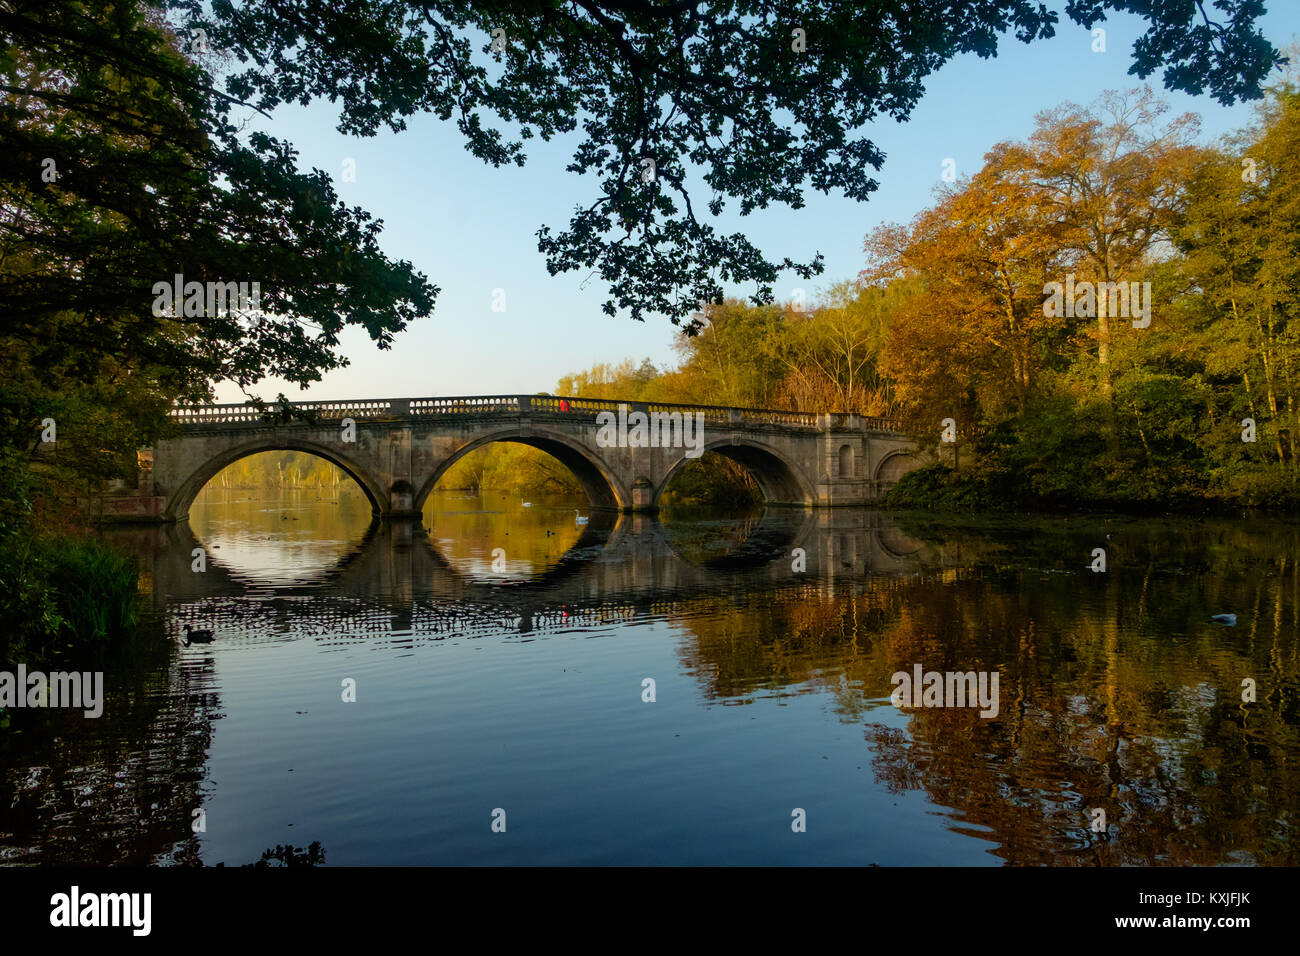 Clumber Park in Nottinghamshire - Stock Image